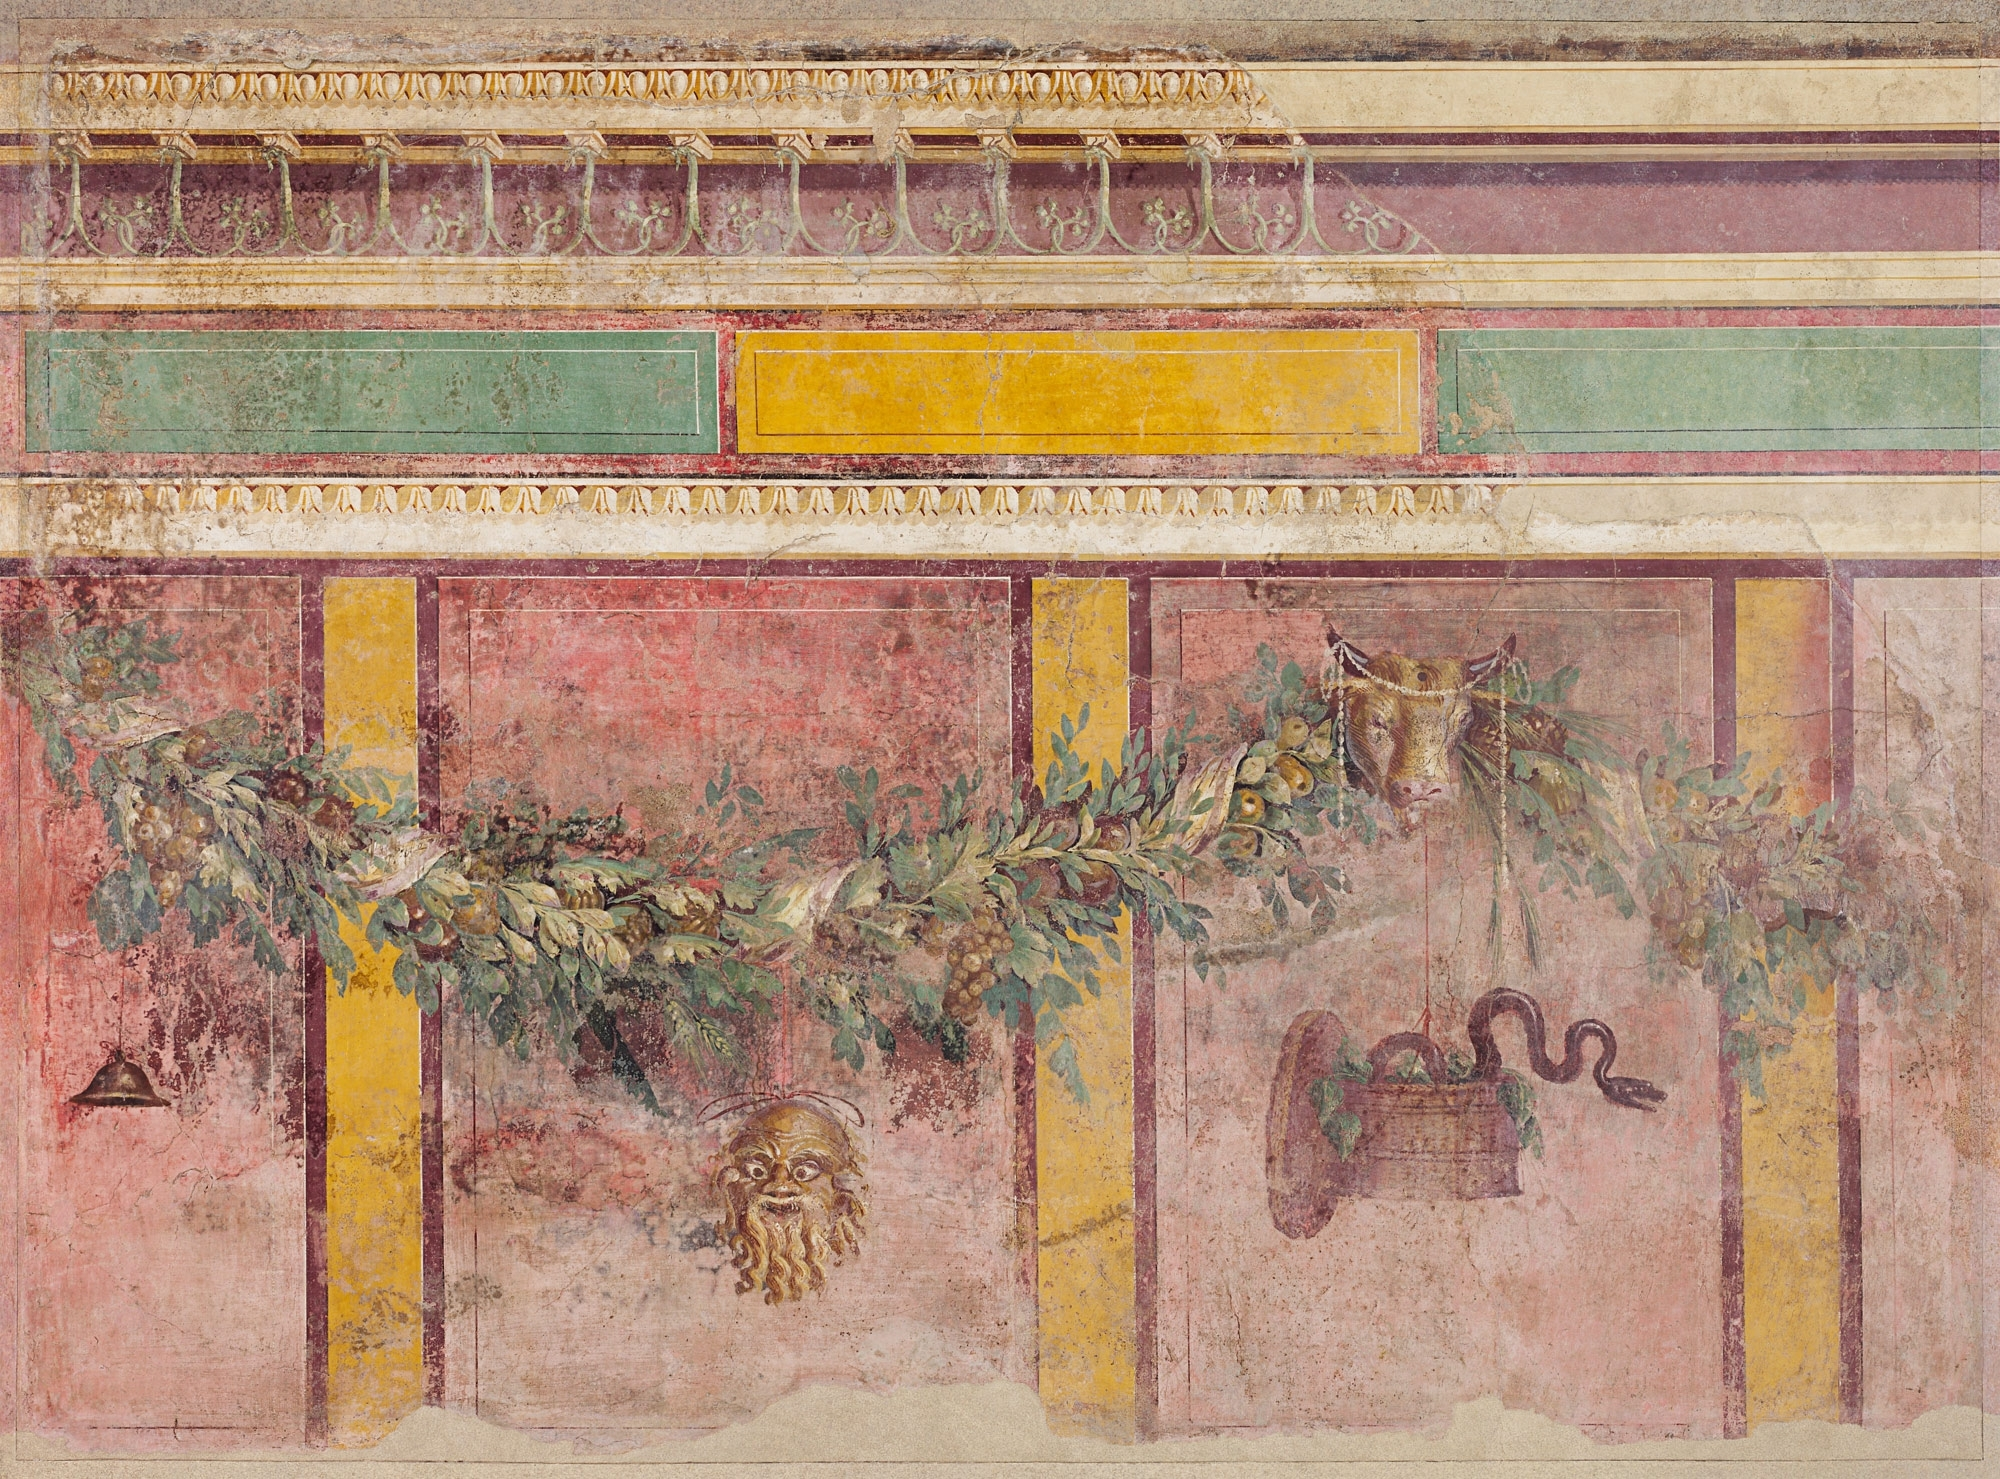 Wall Painting From The West Wall Of Room L Of The Villa Of P For Well Known Italian Villa Wall Art (View 14 of 15)